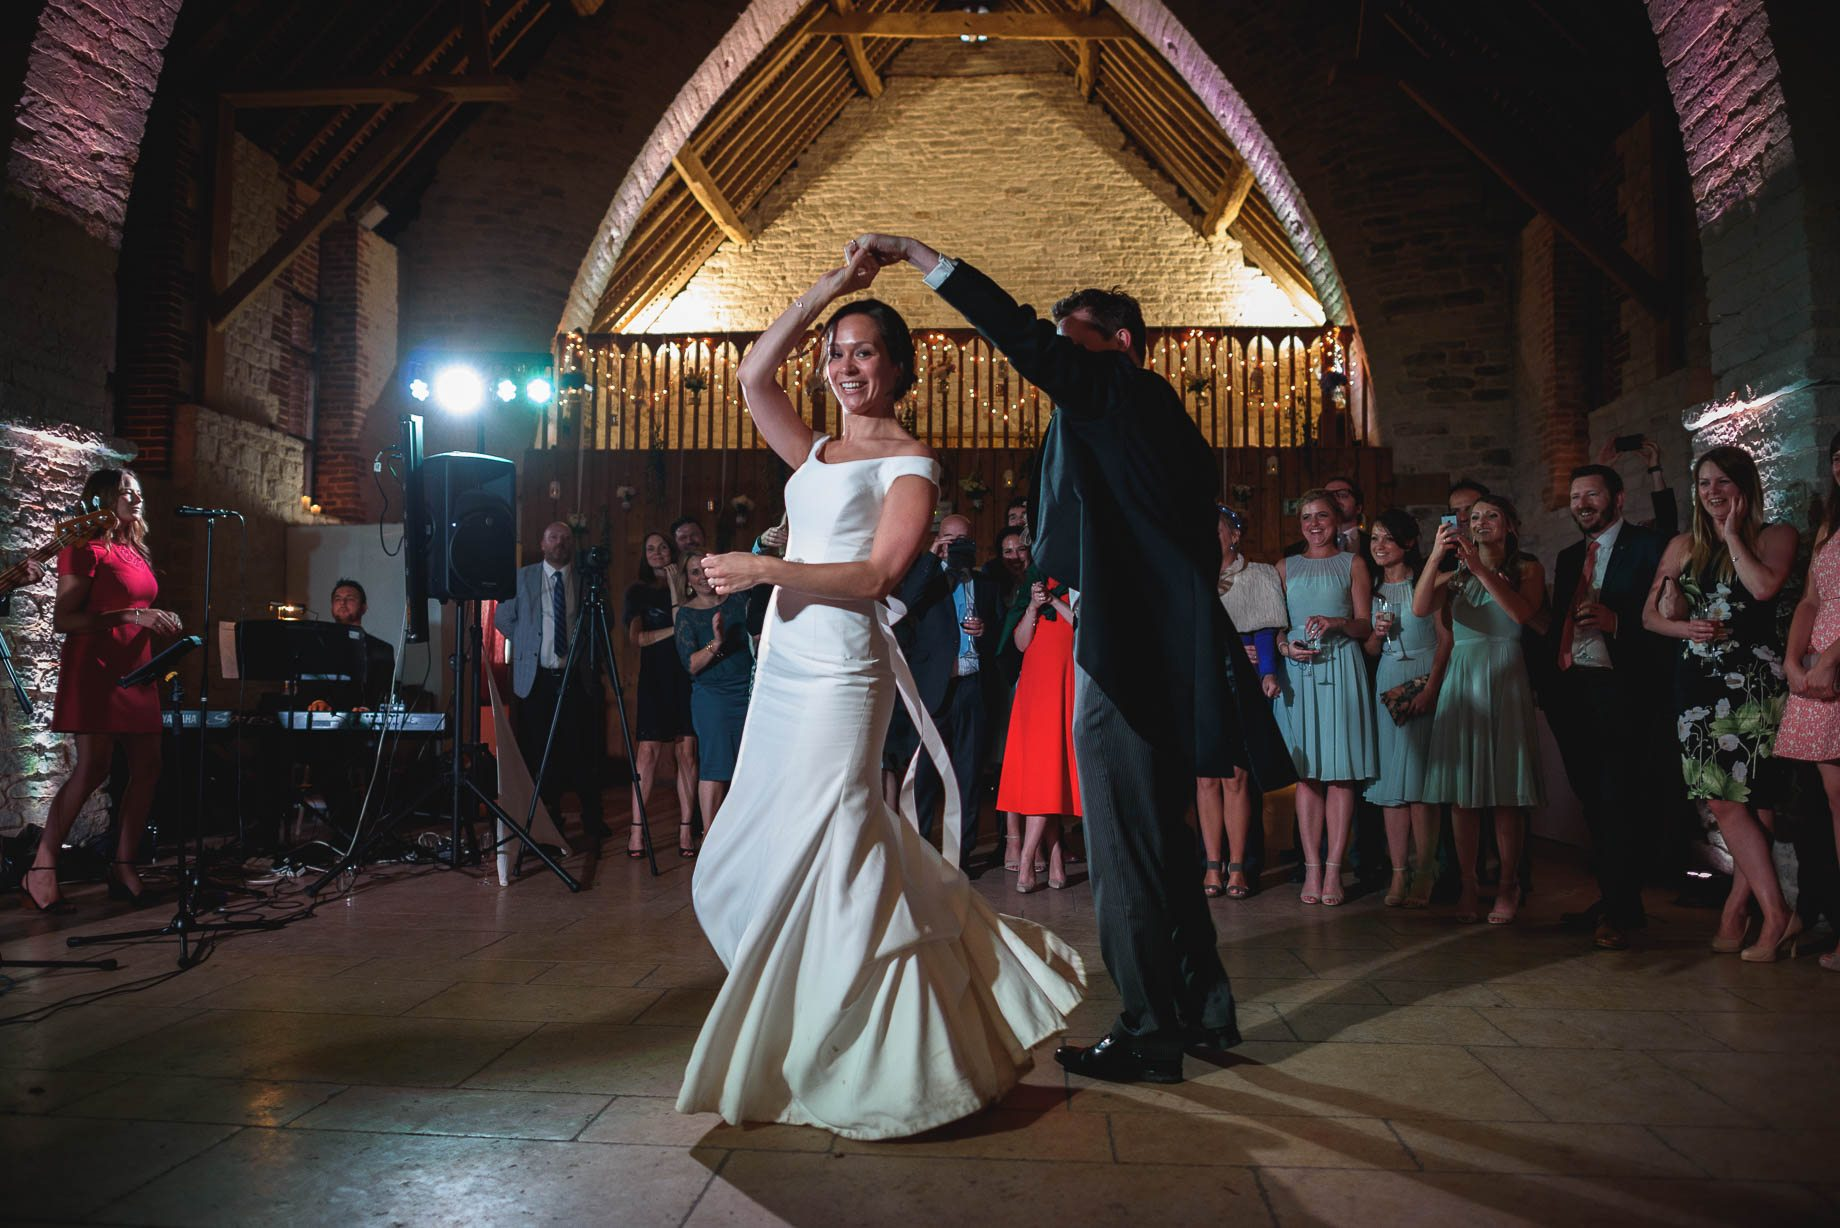 Tithe Barn wedding photography - Jayme and David (173 of 189)